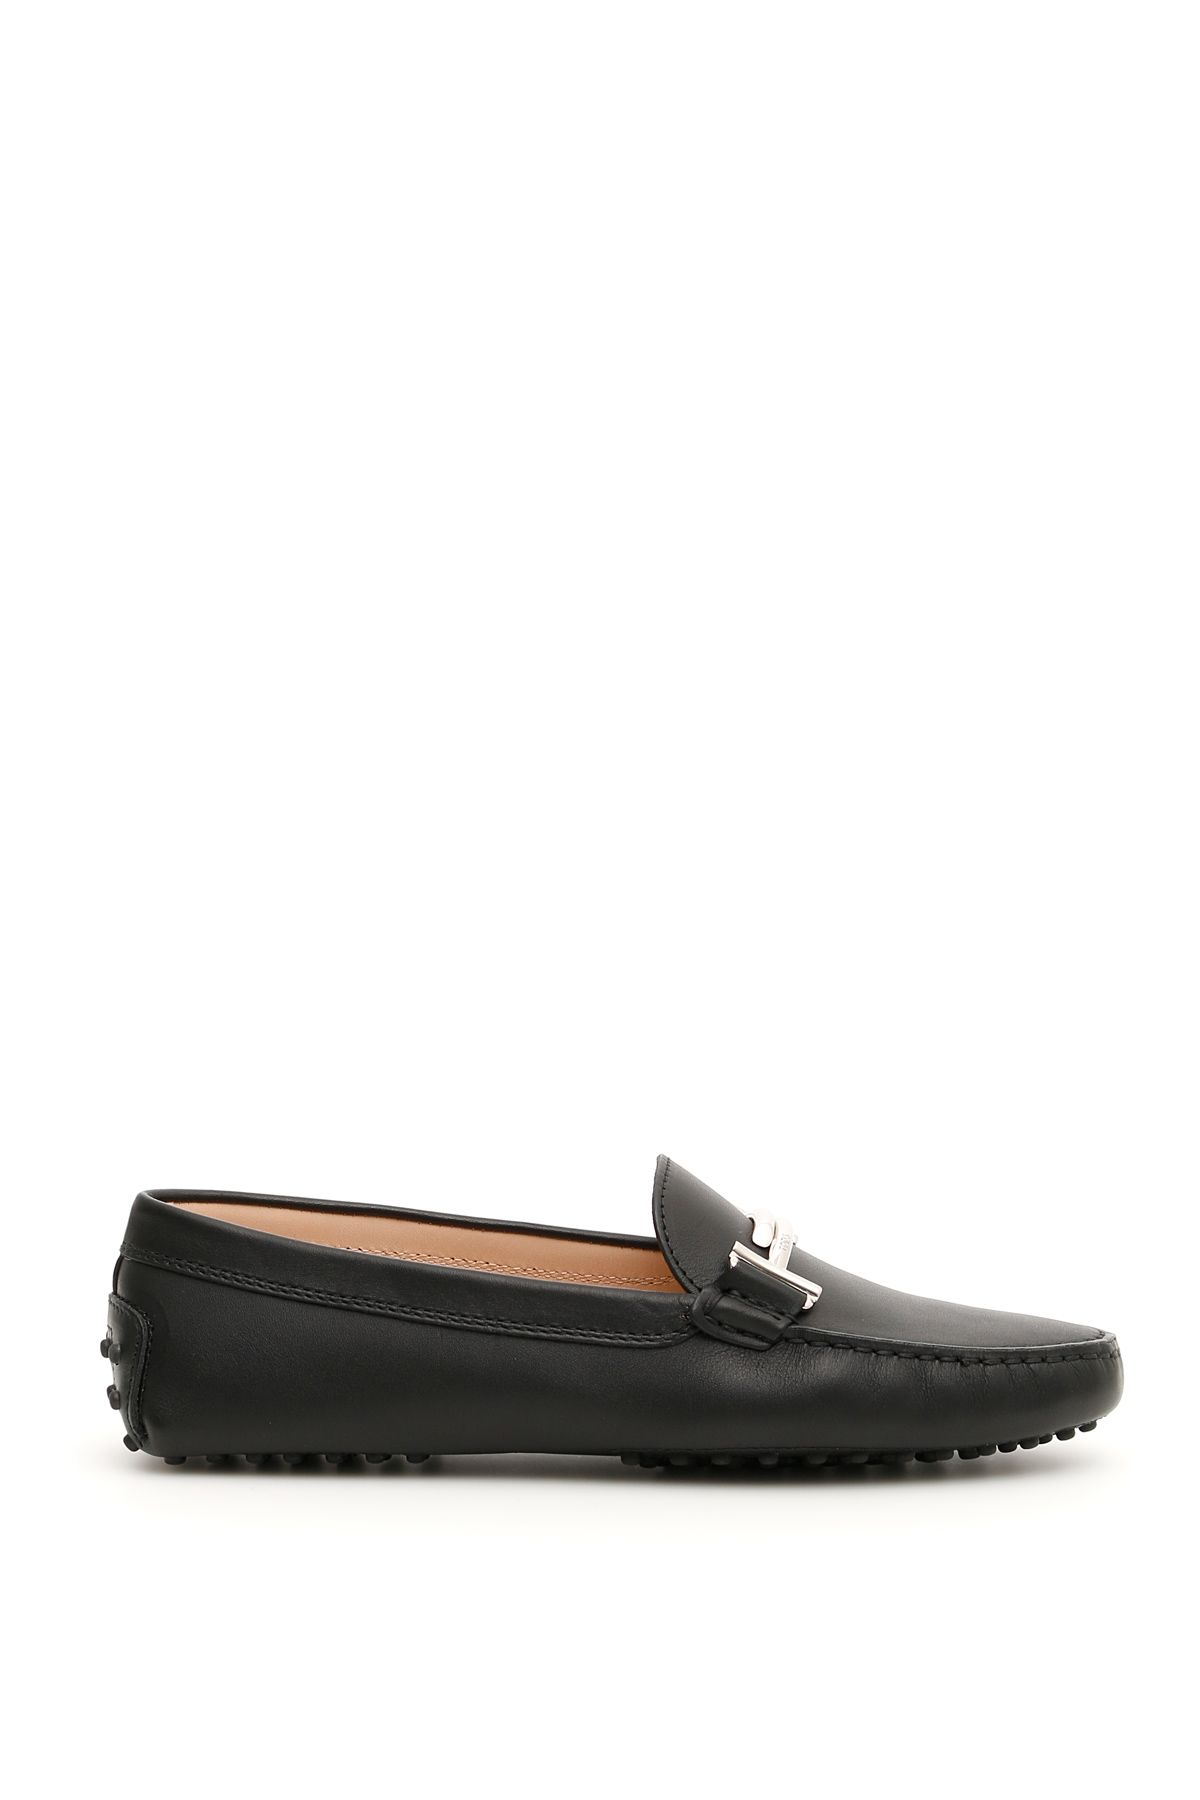 GOMMINO LOAFERS WITH DOUBLE T LOGO